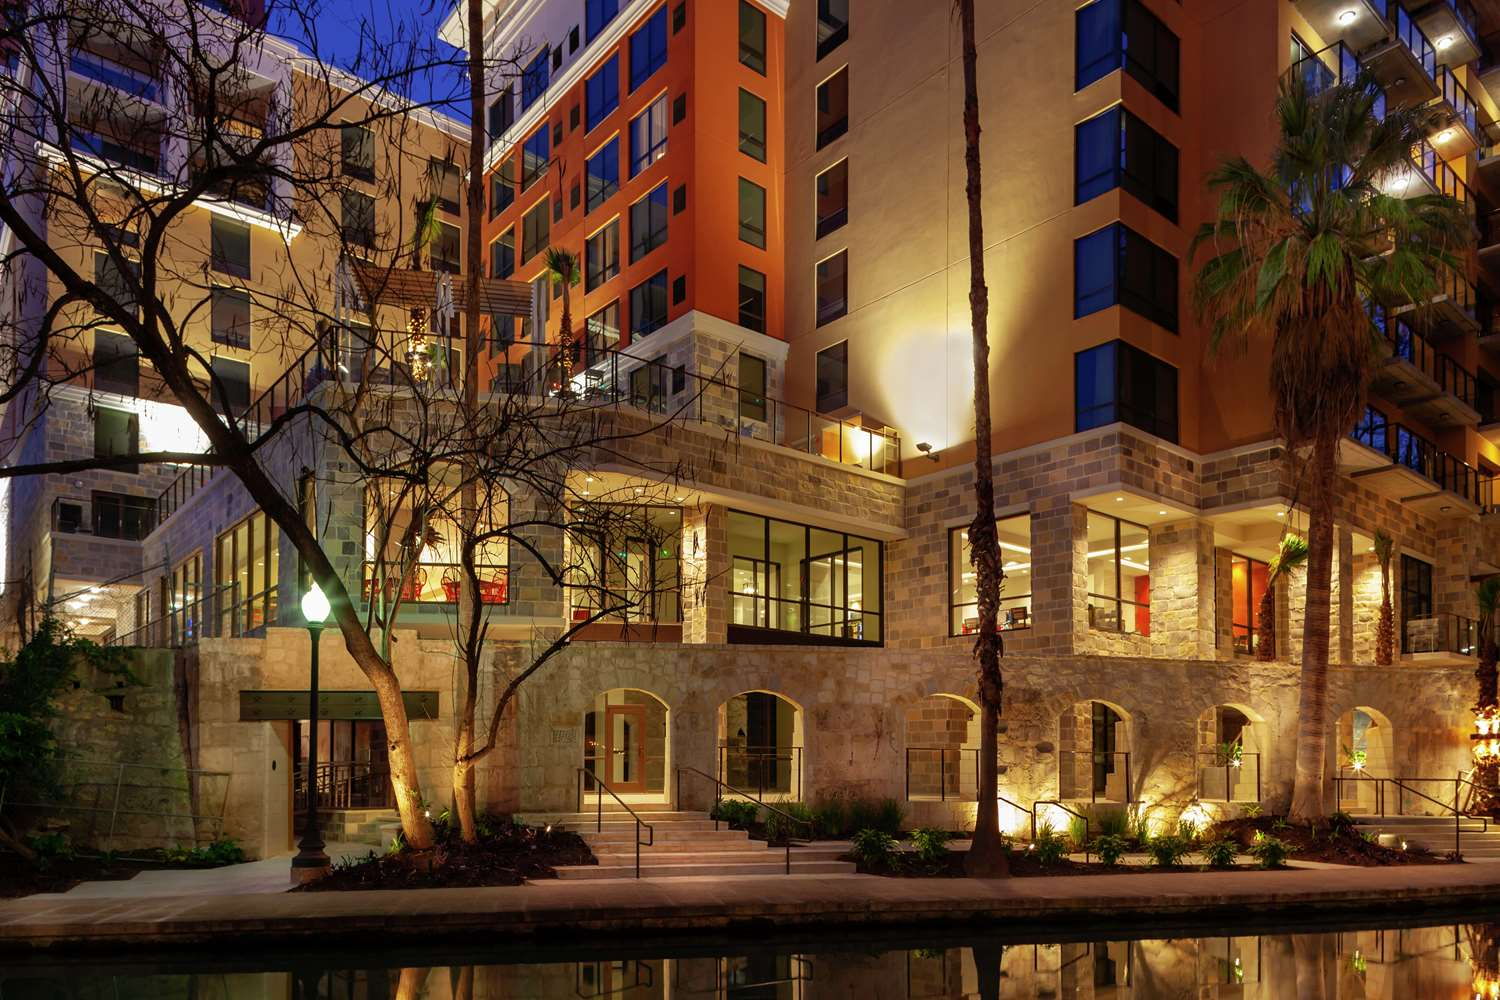 Home2 San Antonio Riverwalk